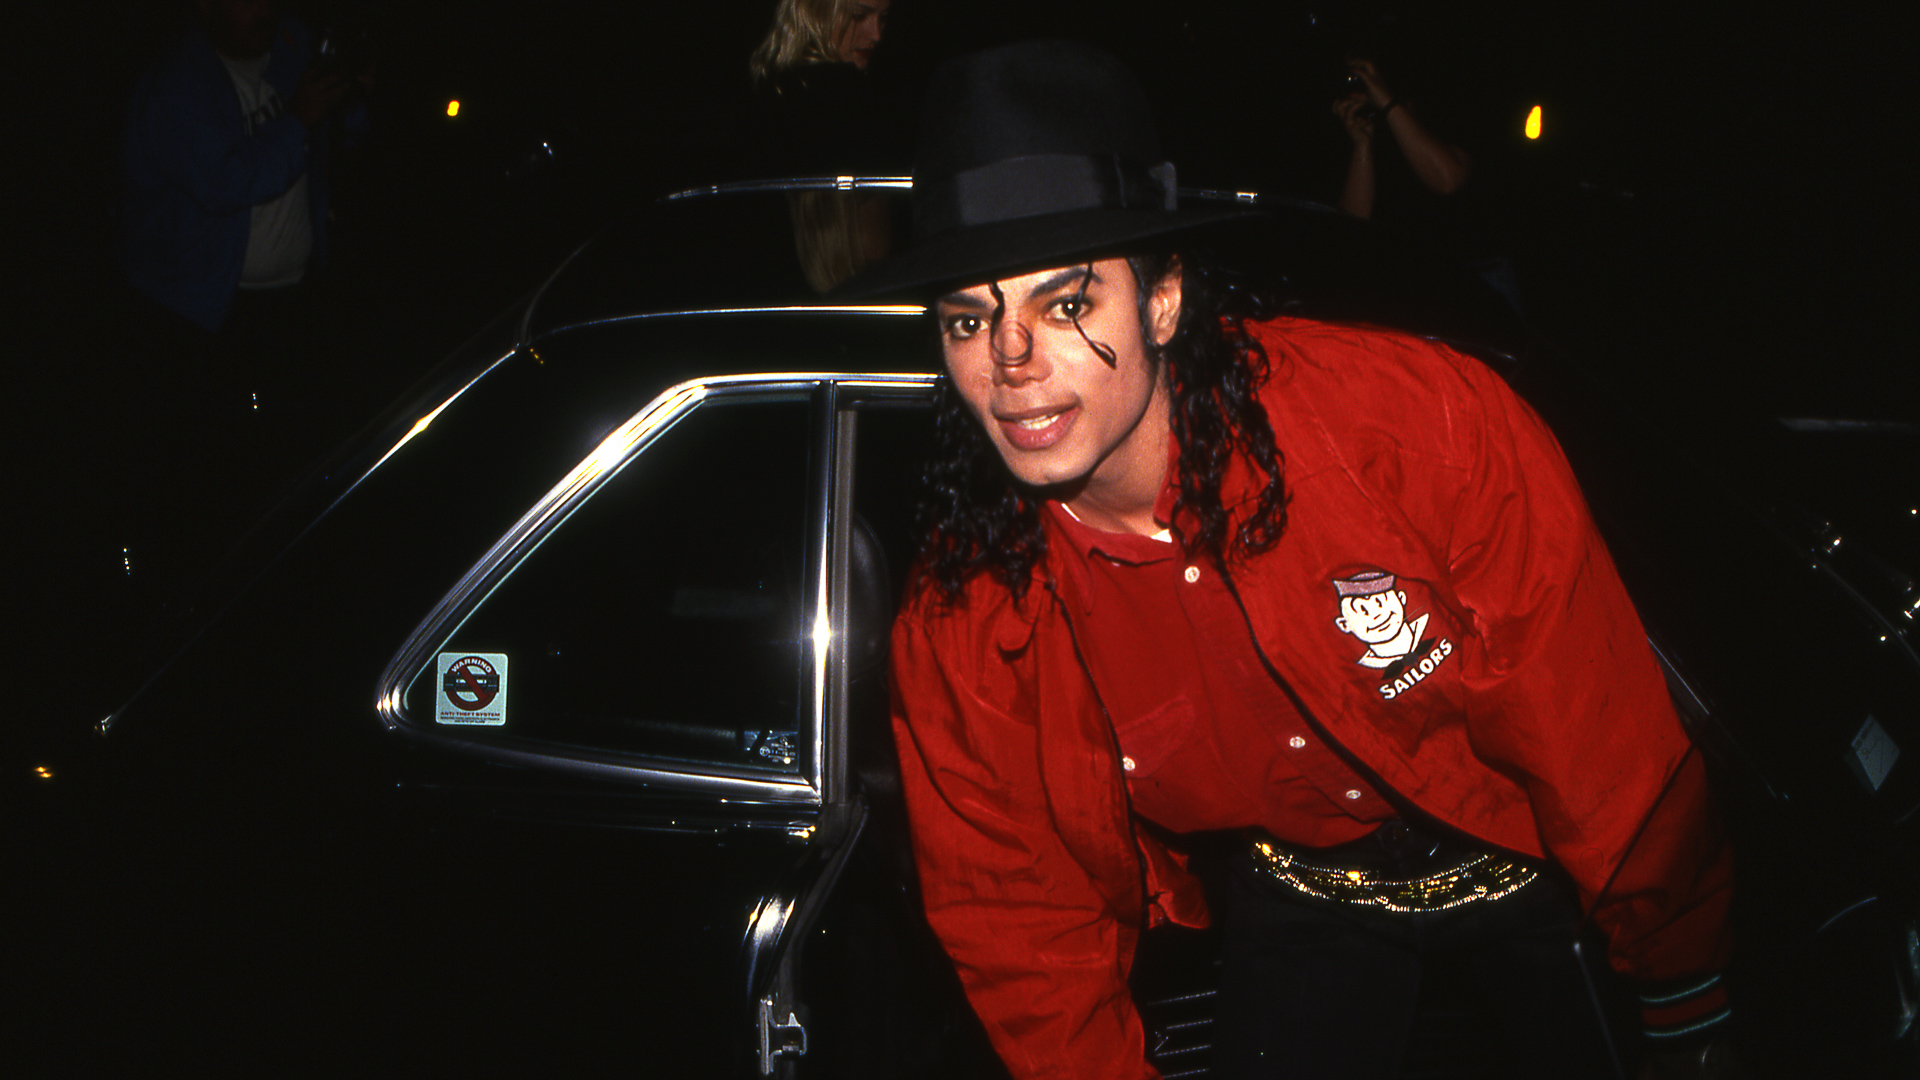 Michael Jackson composed songs despite not being able to play any instruments.